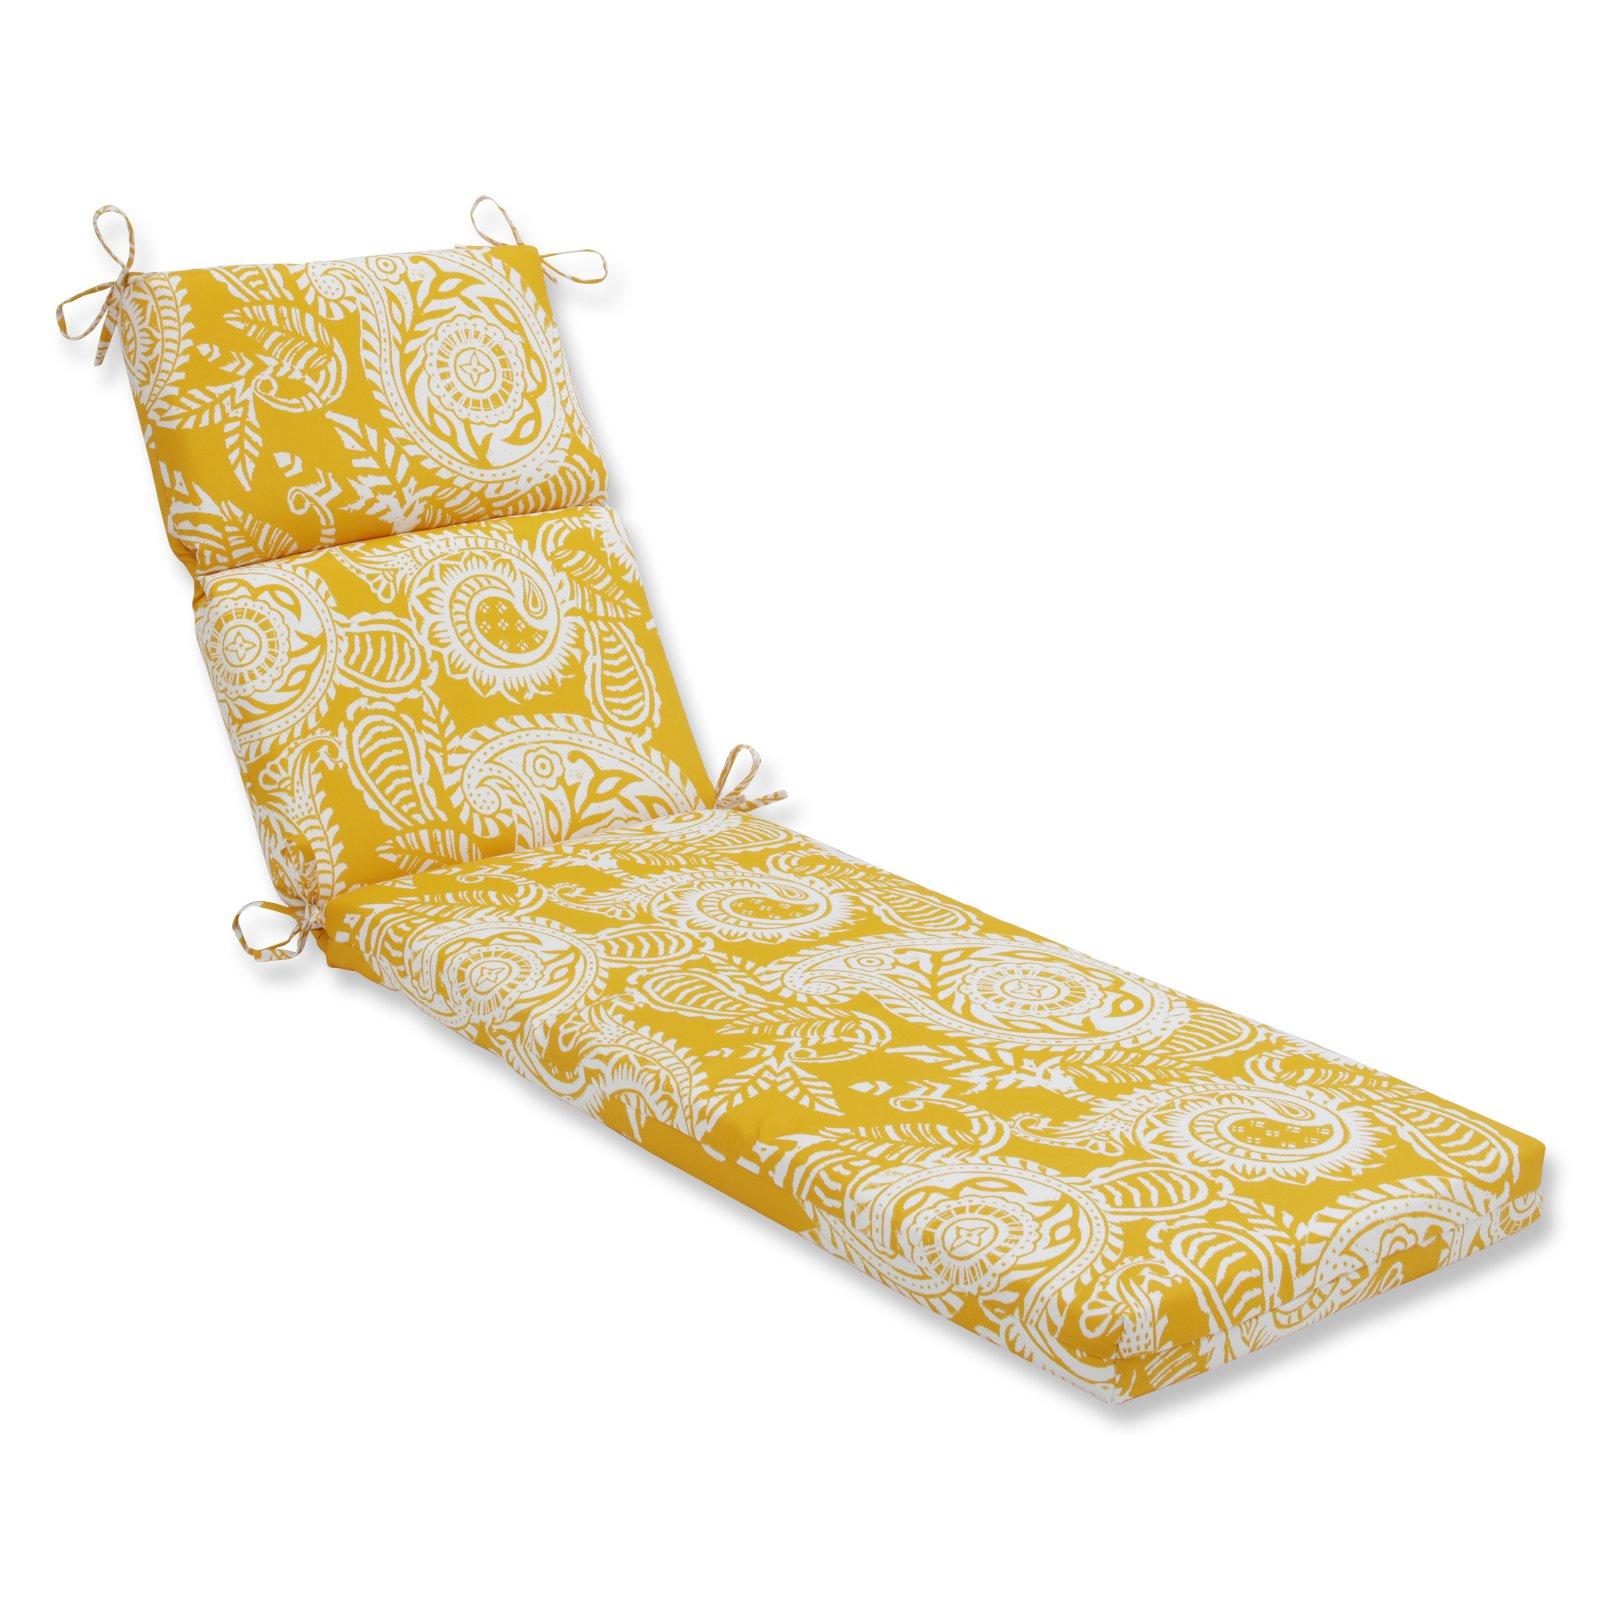 Pillow Perfect Outdoor/Indoor Addie Egg Yolk Chaise Lounge Cushion